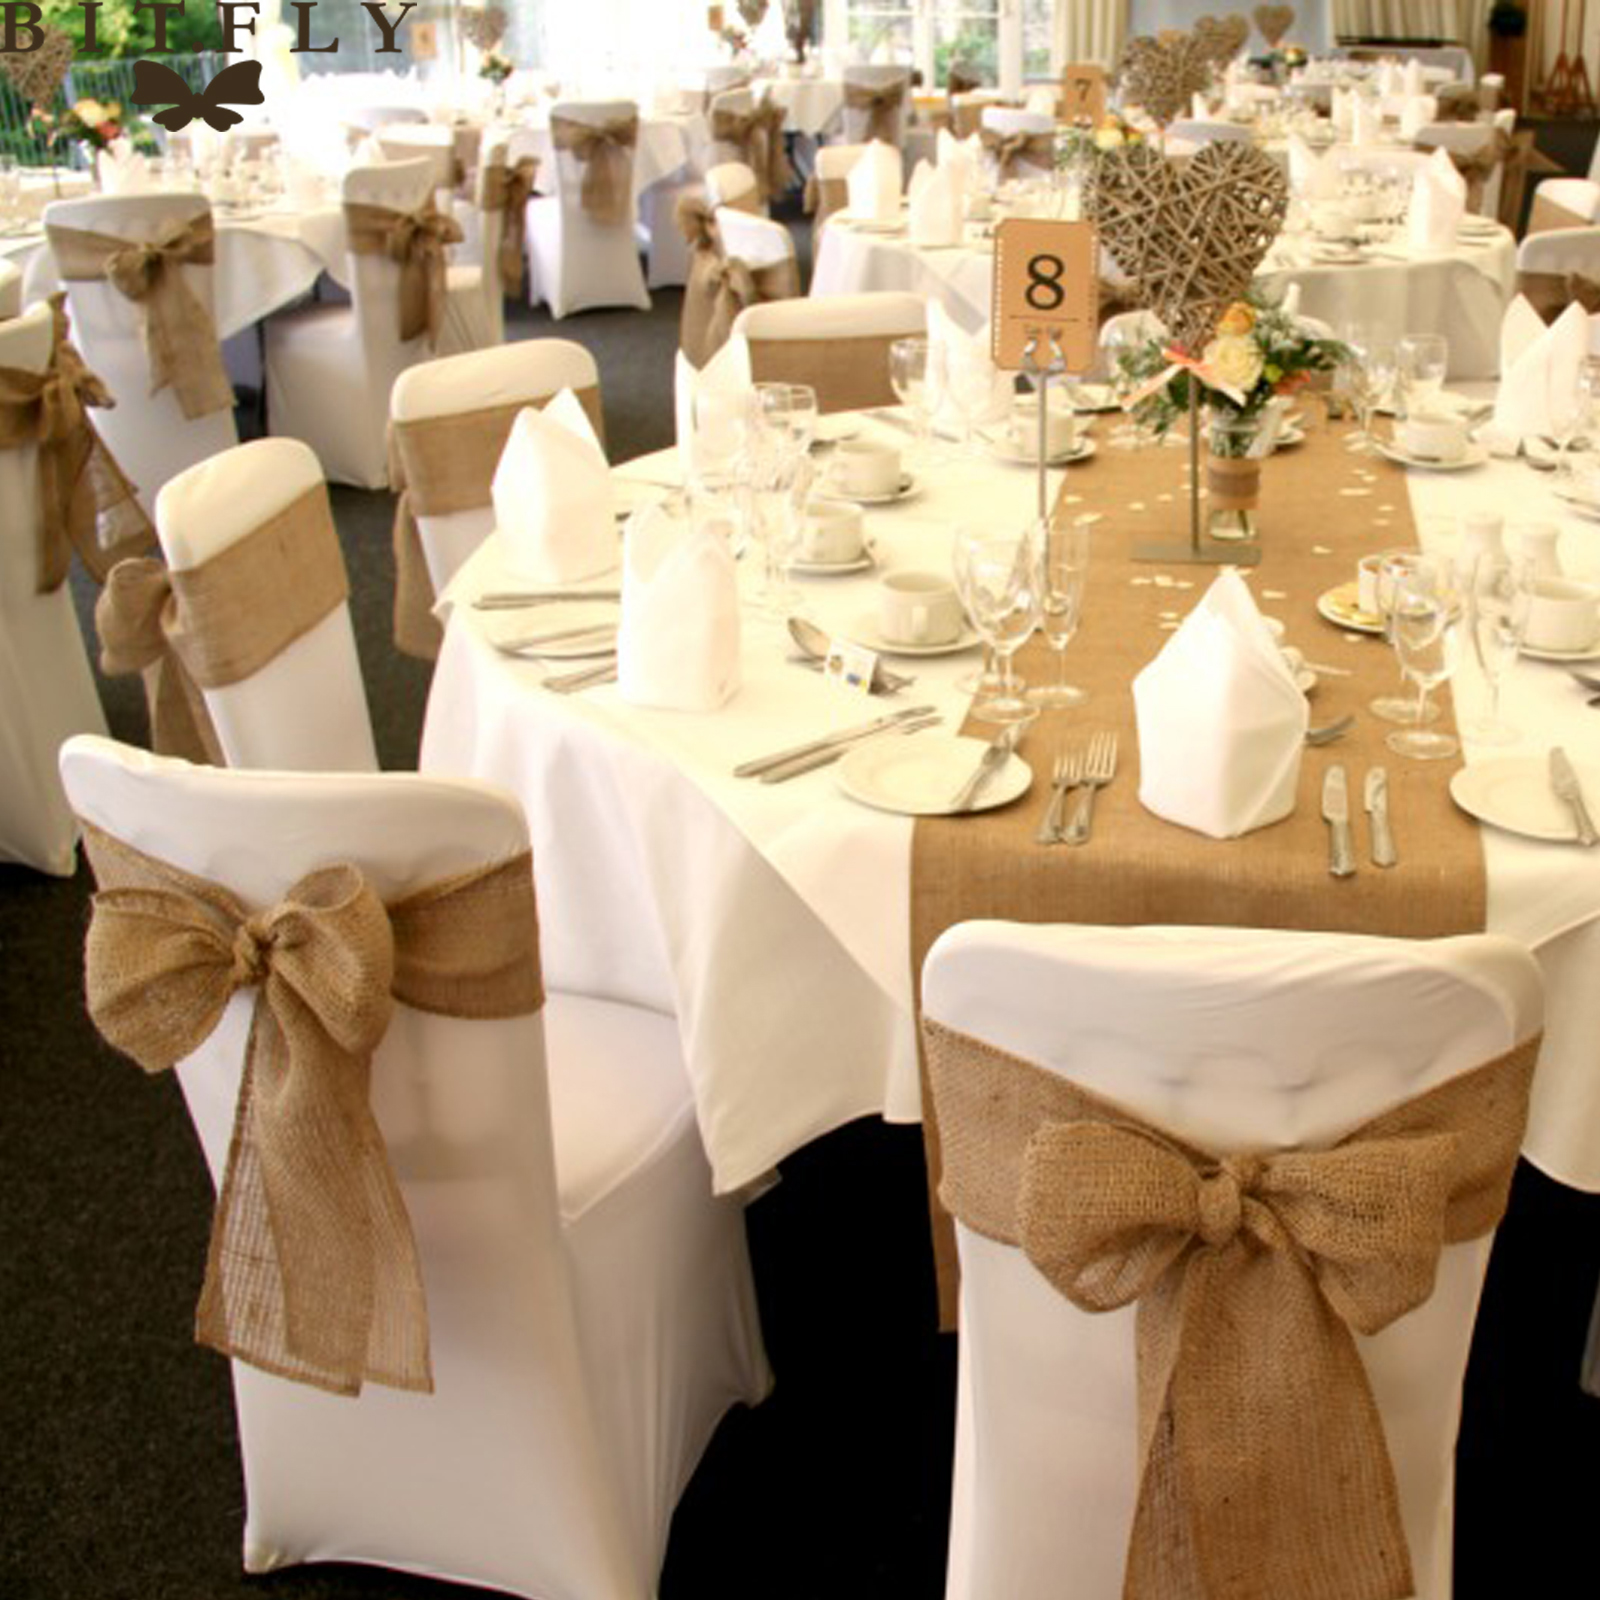 Burlap Chair Sashes Rattan Two Chairs And Table Rustic Theme Wedding Decoration Contain